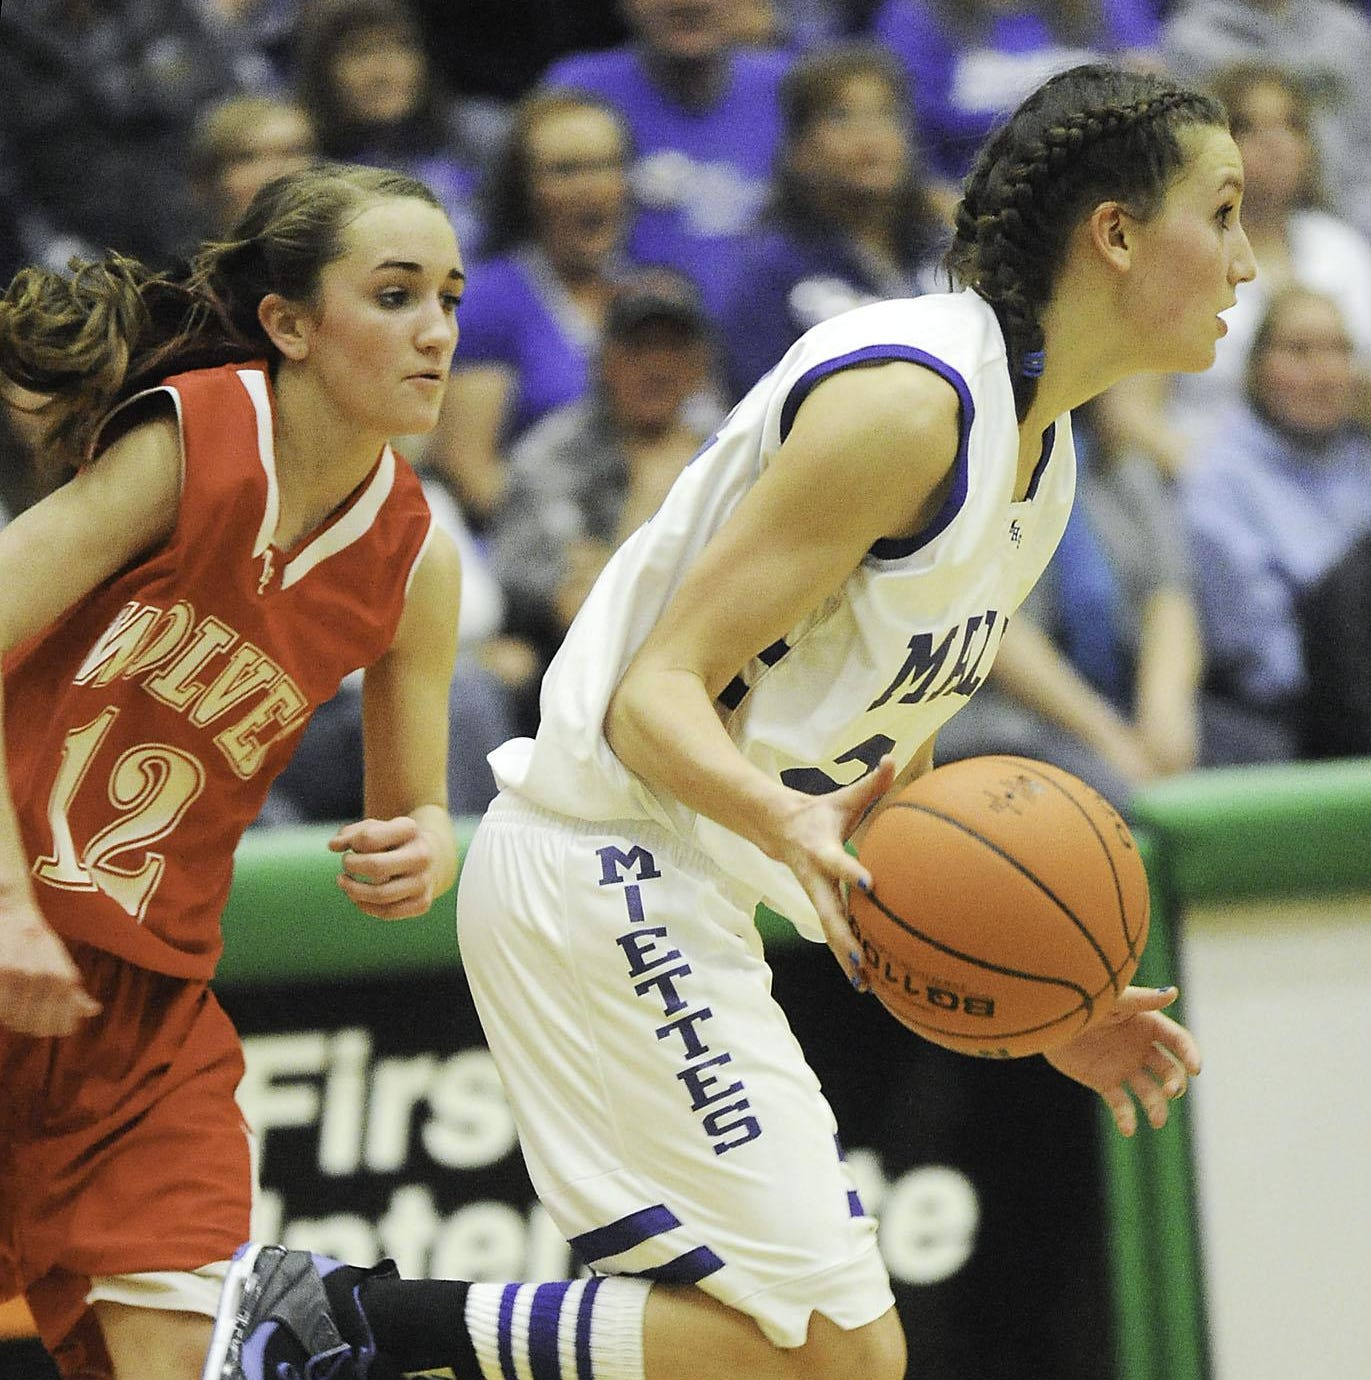 GOAT girls' basketball: Malta M-Ettes have always set the standard